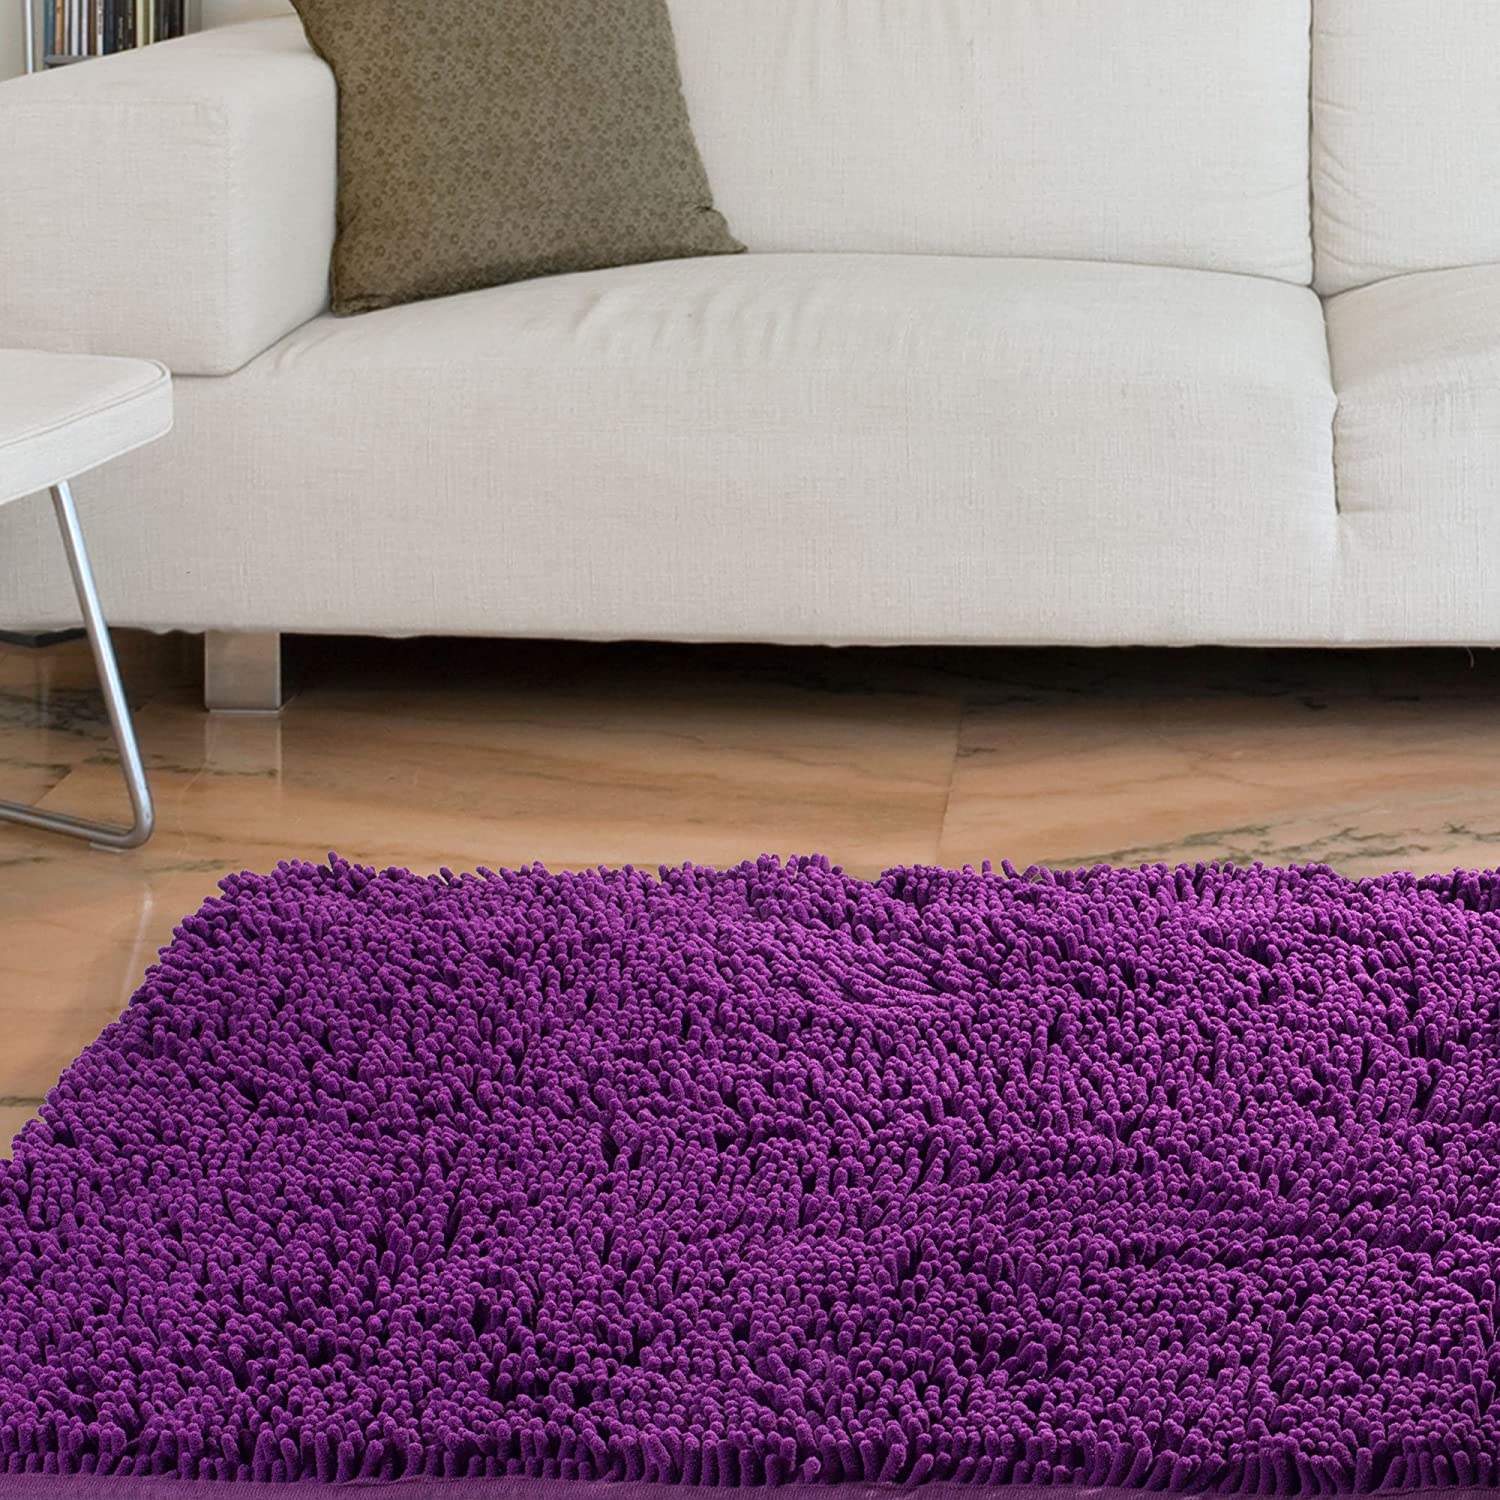 Amazon Lavish Home High Pile Carpet Shag Rug 21 By 36 Inch Purple Kitchen Dining